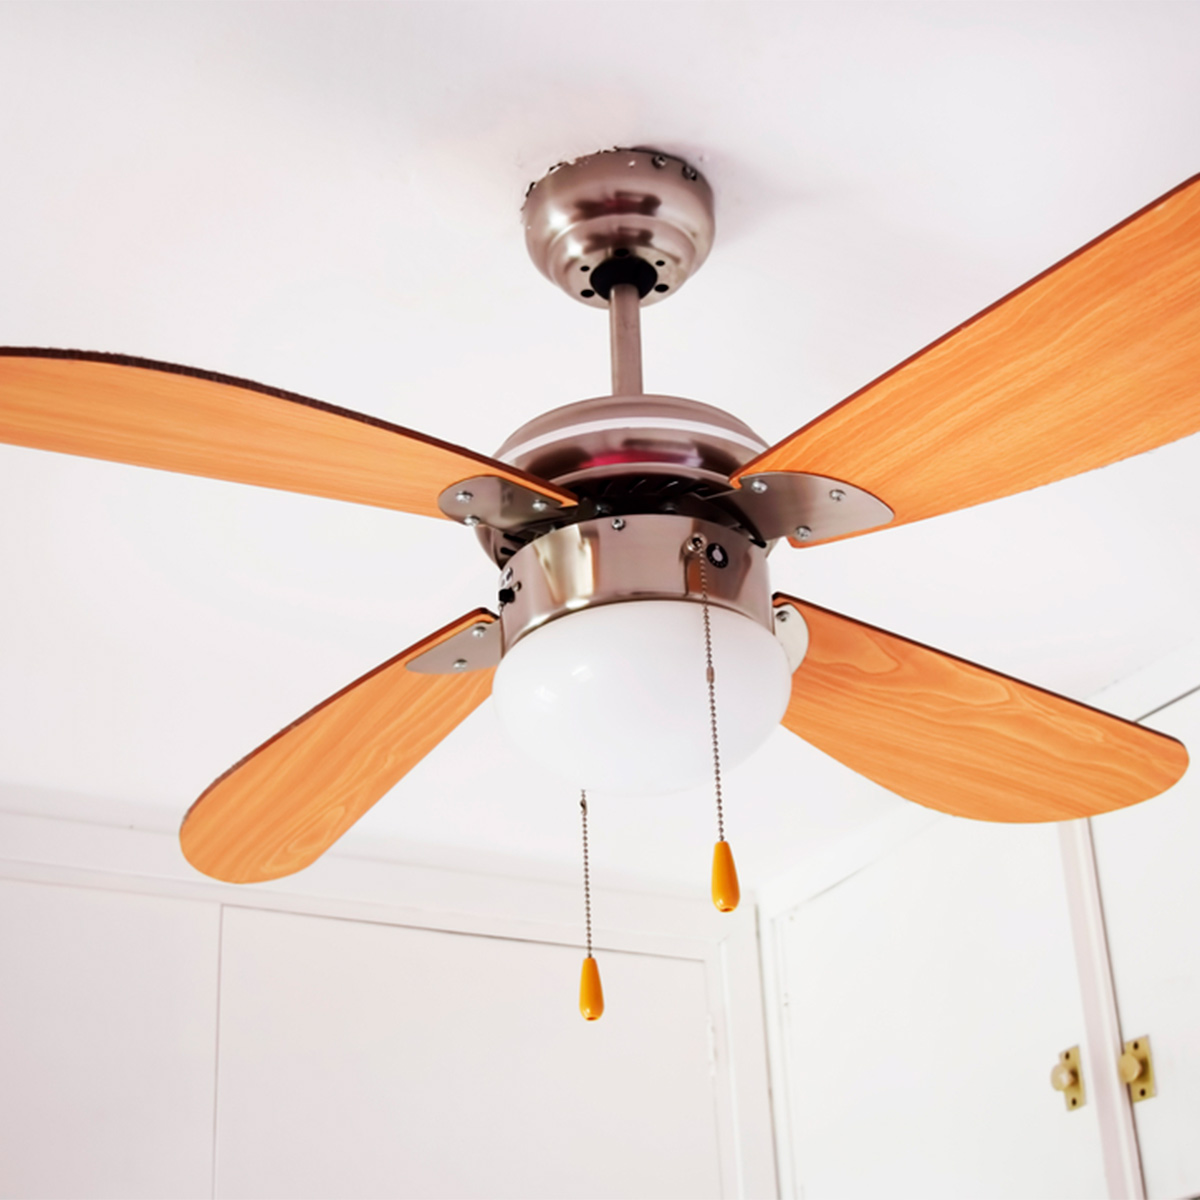 10 Myths About Saving Energy at Home